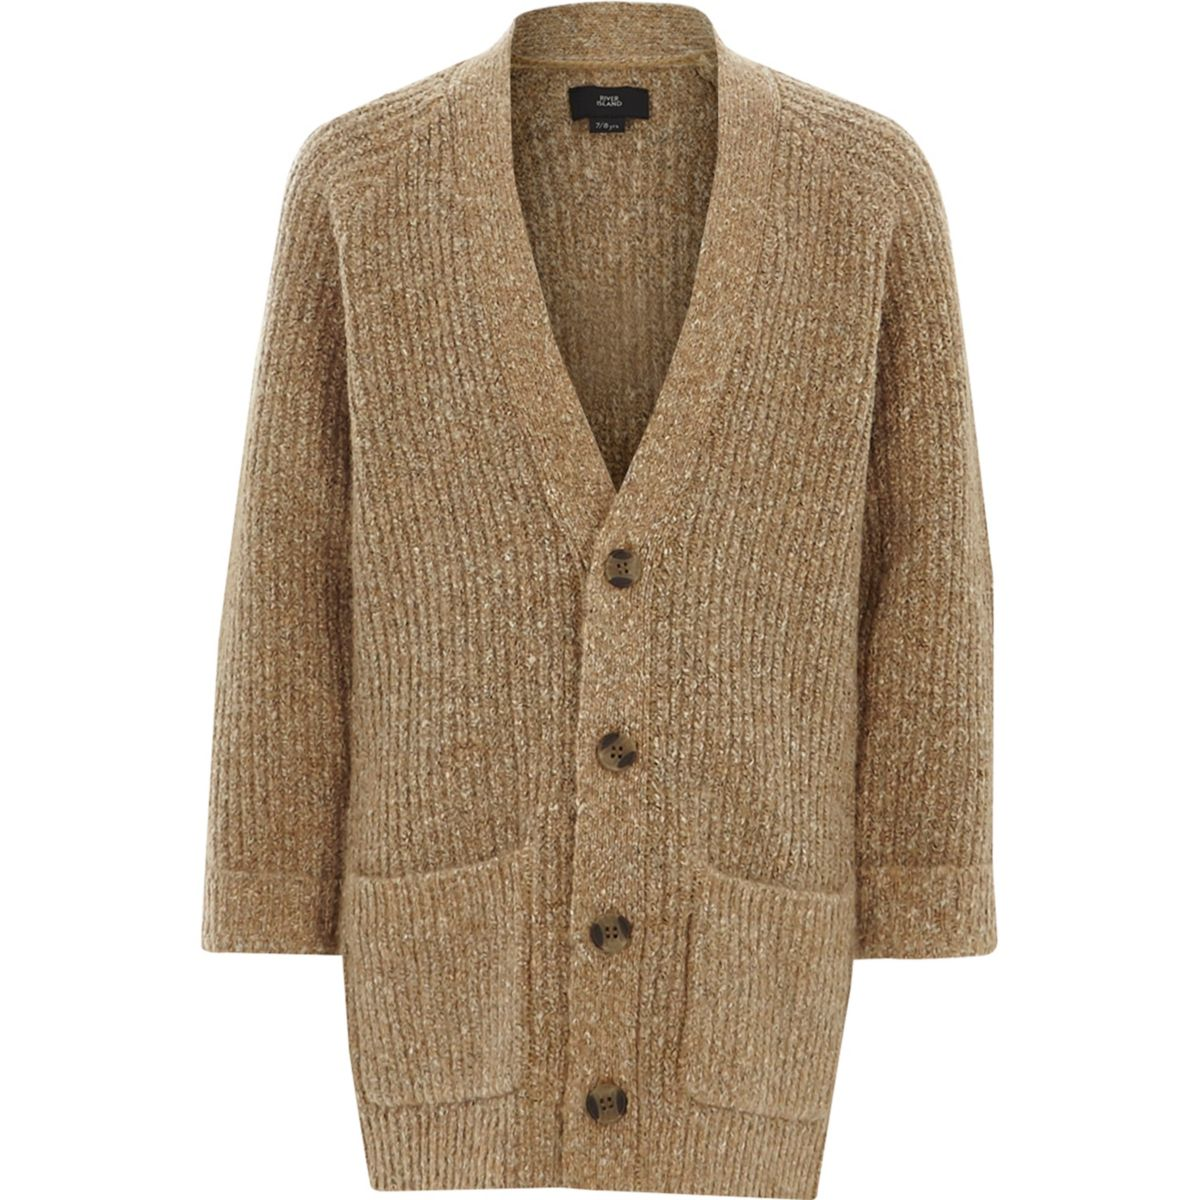 Boys light brown longline knit cardigan